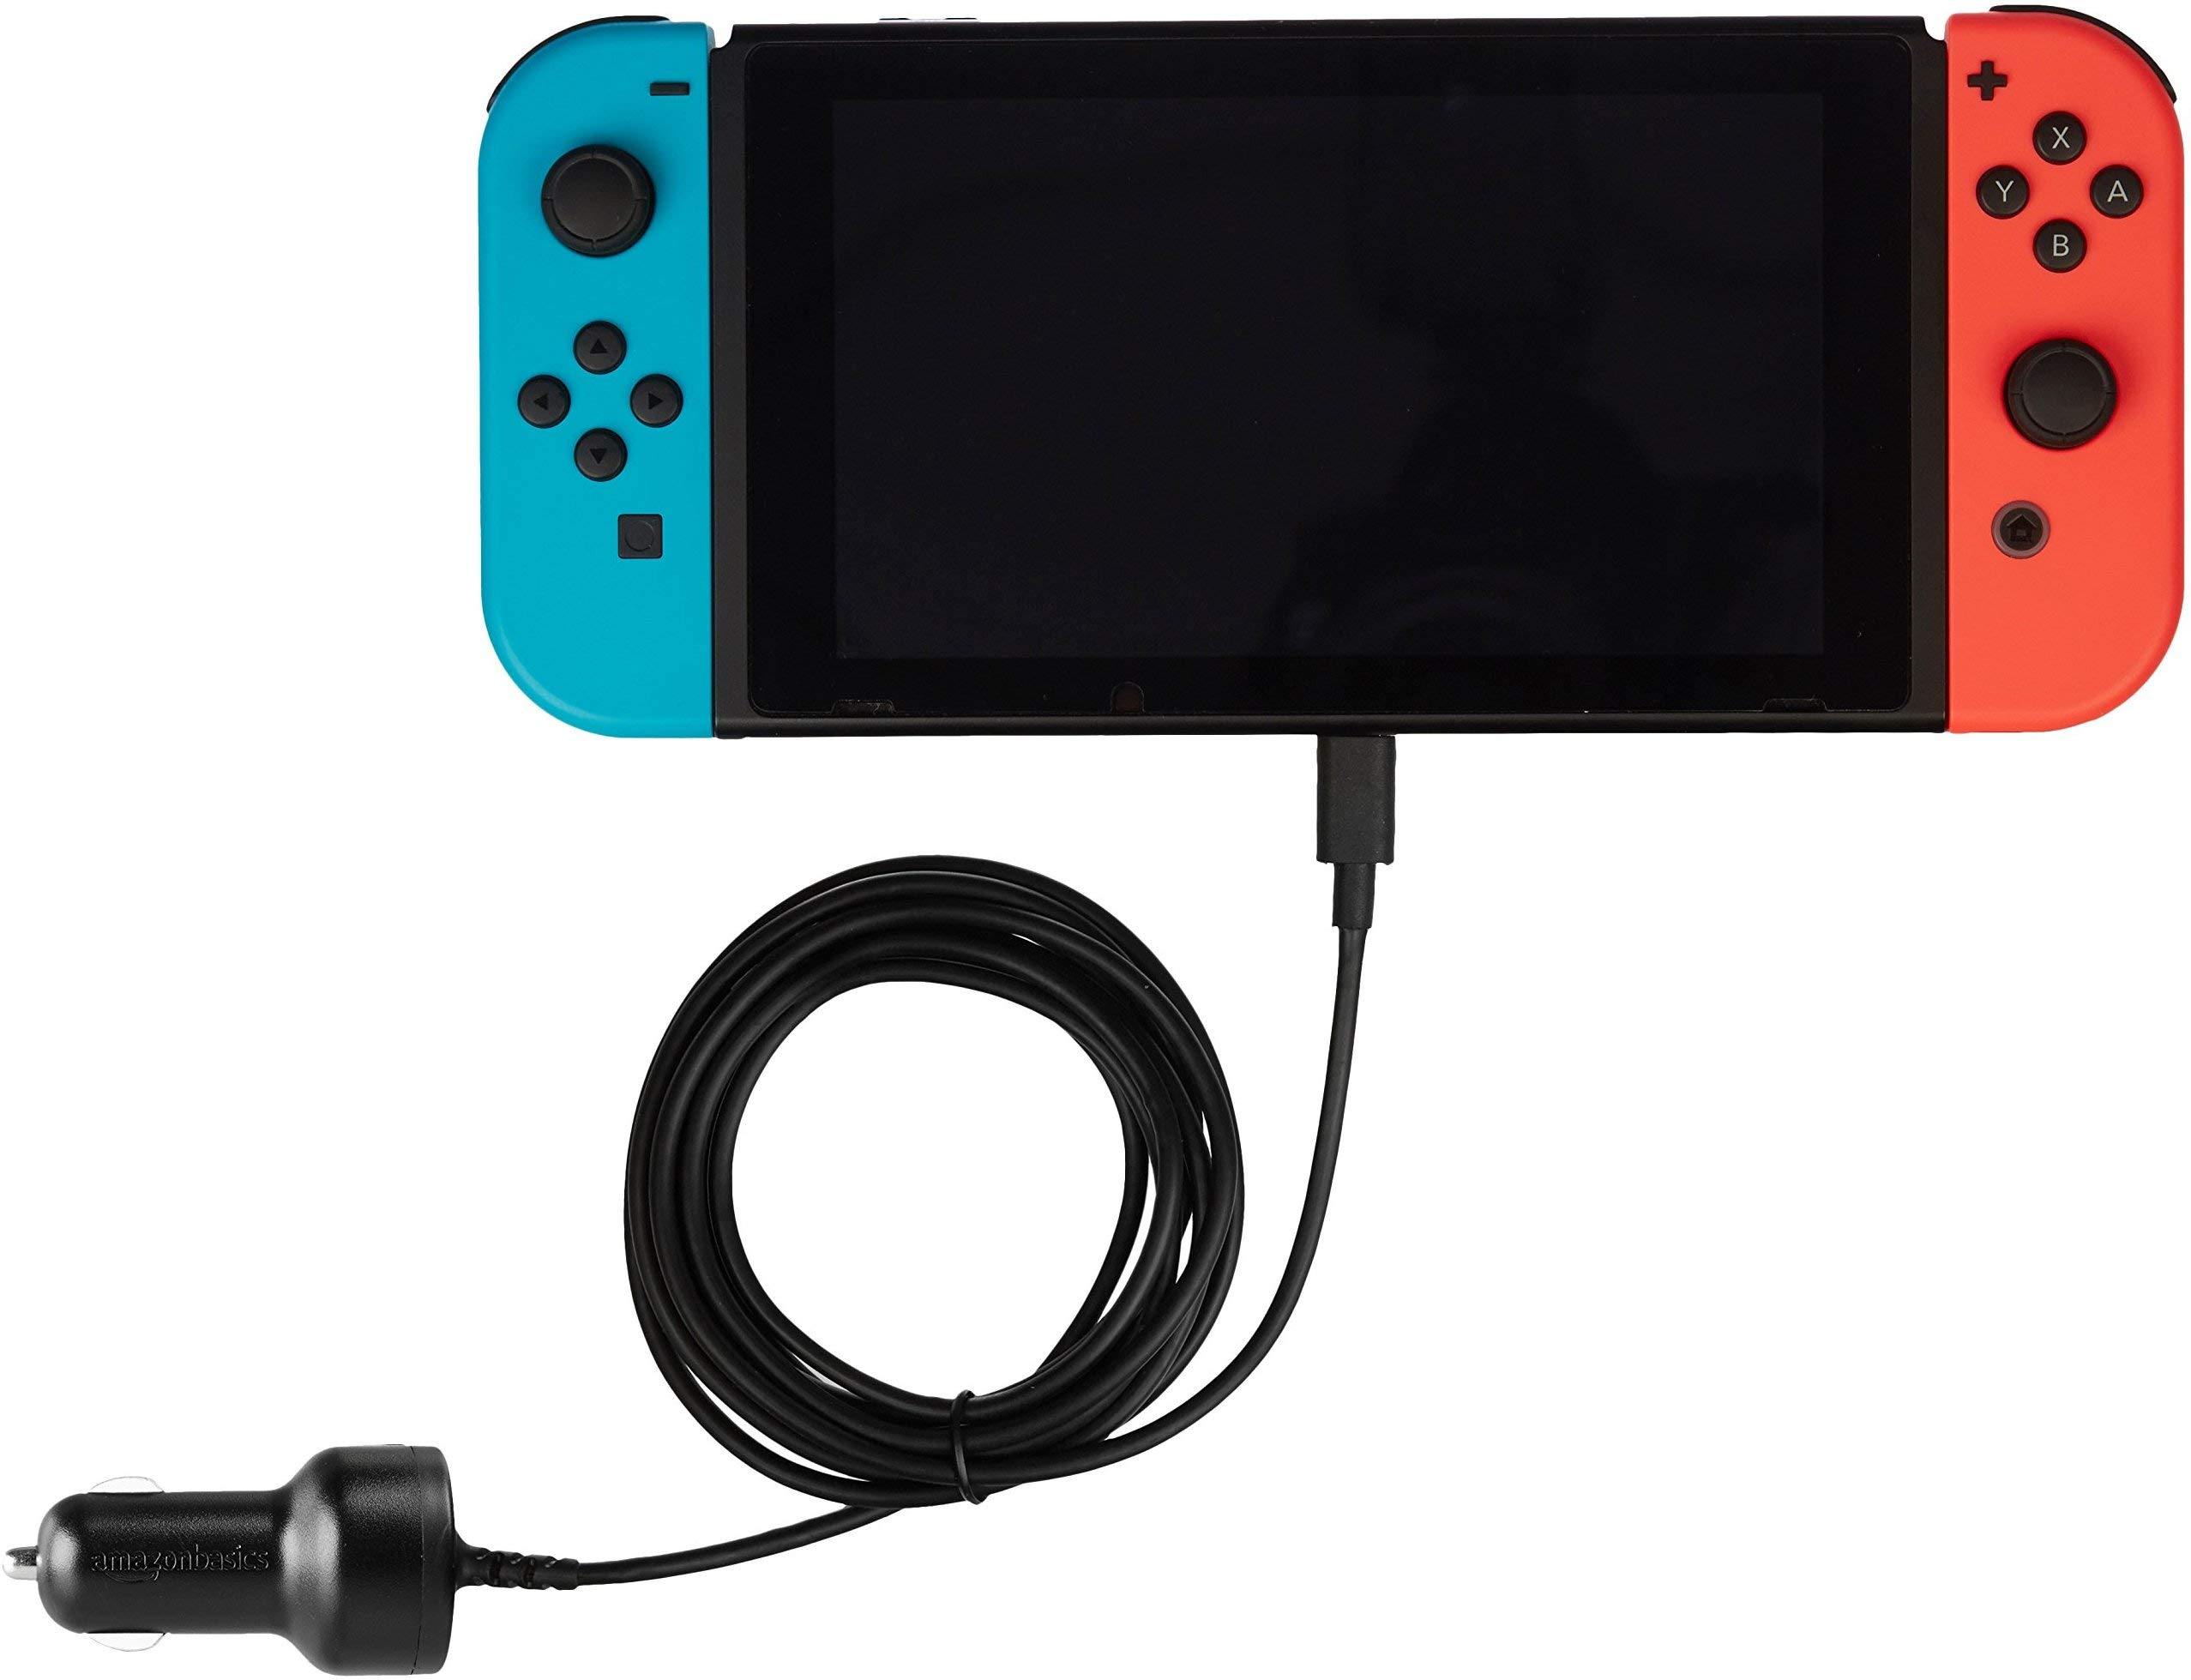 Amazon Basics Car DC Charger for Nintendo Switch - 6 Foot Cable, Black